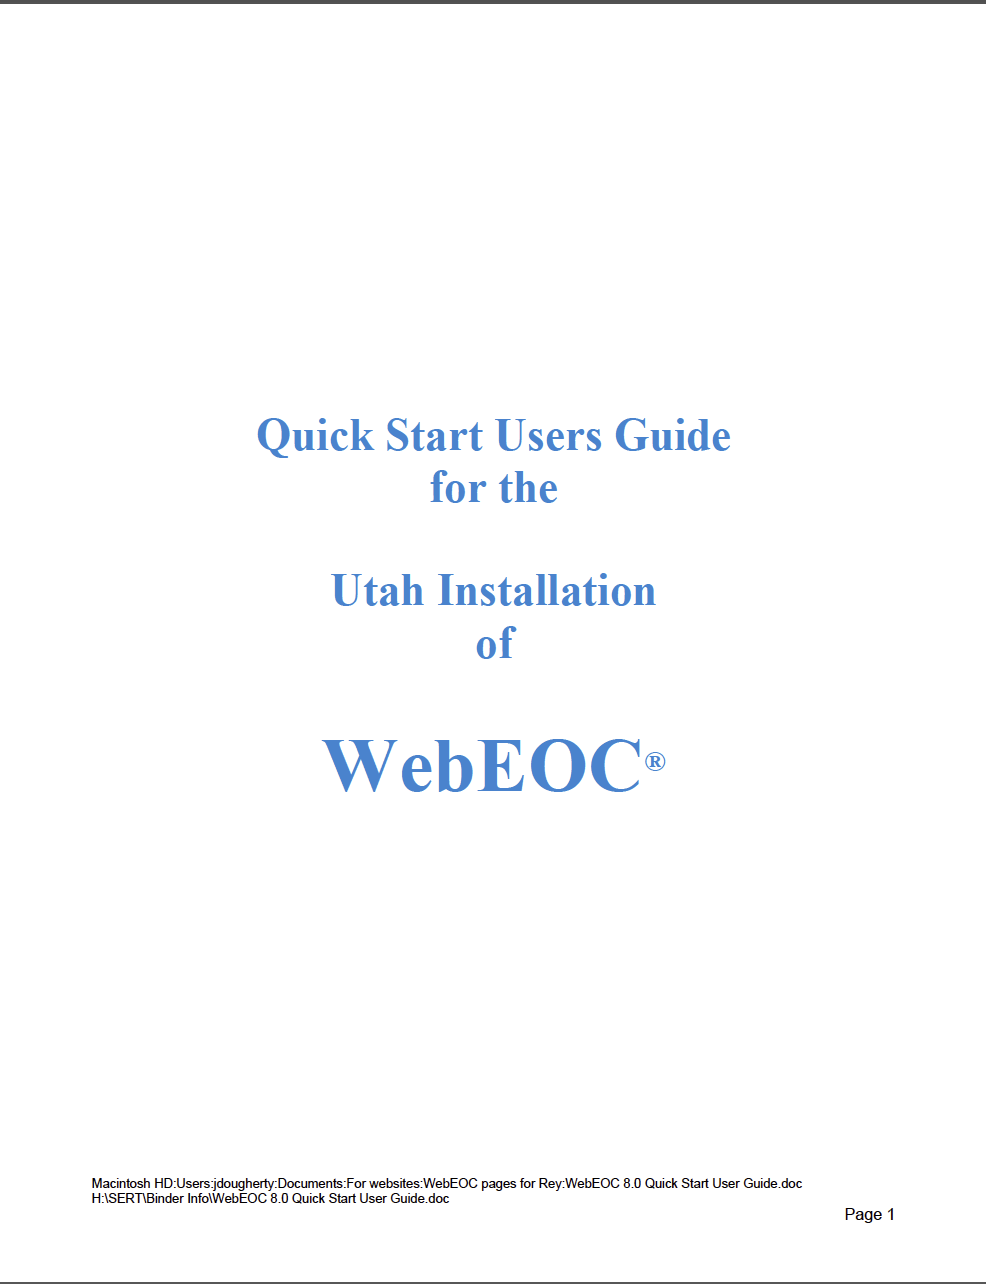 WebEOC Quick Start Users Guide